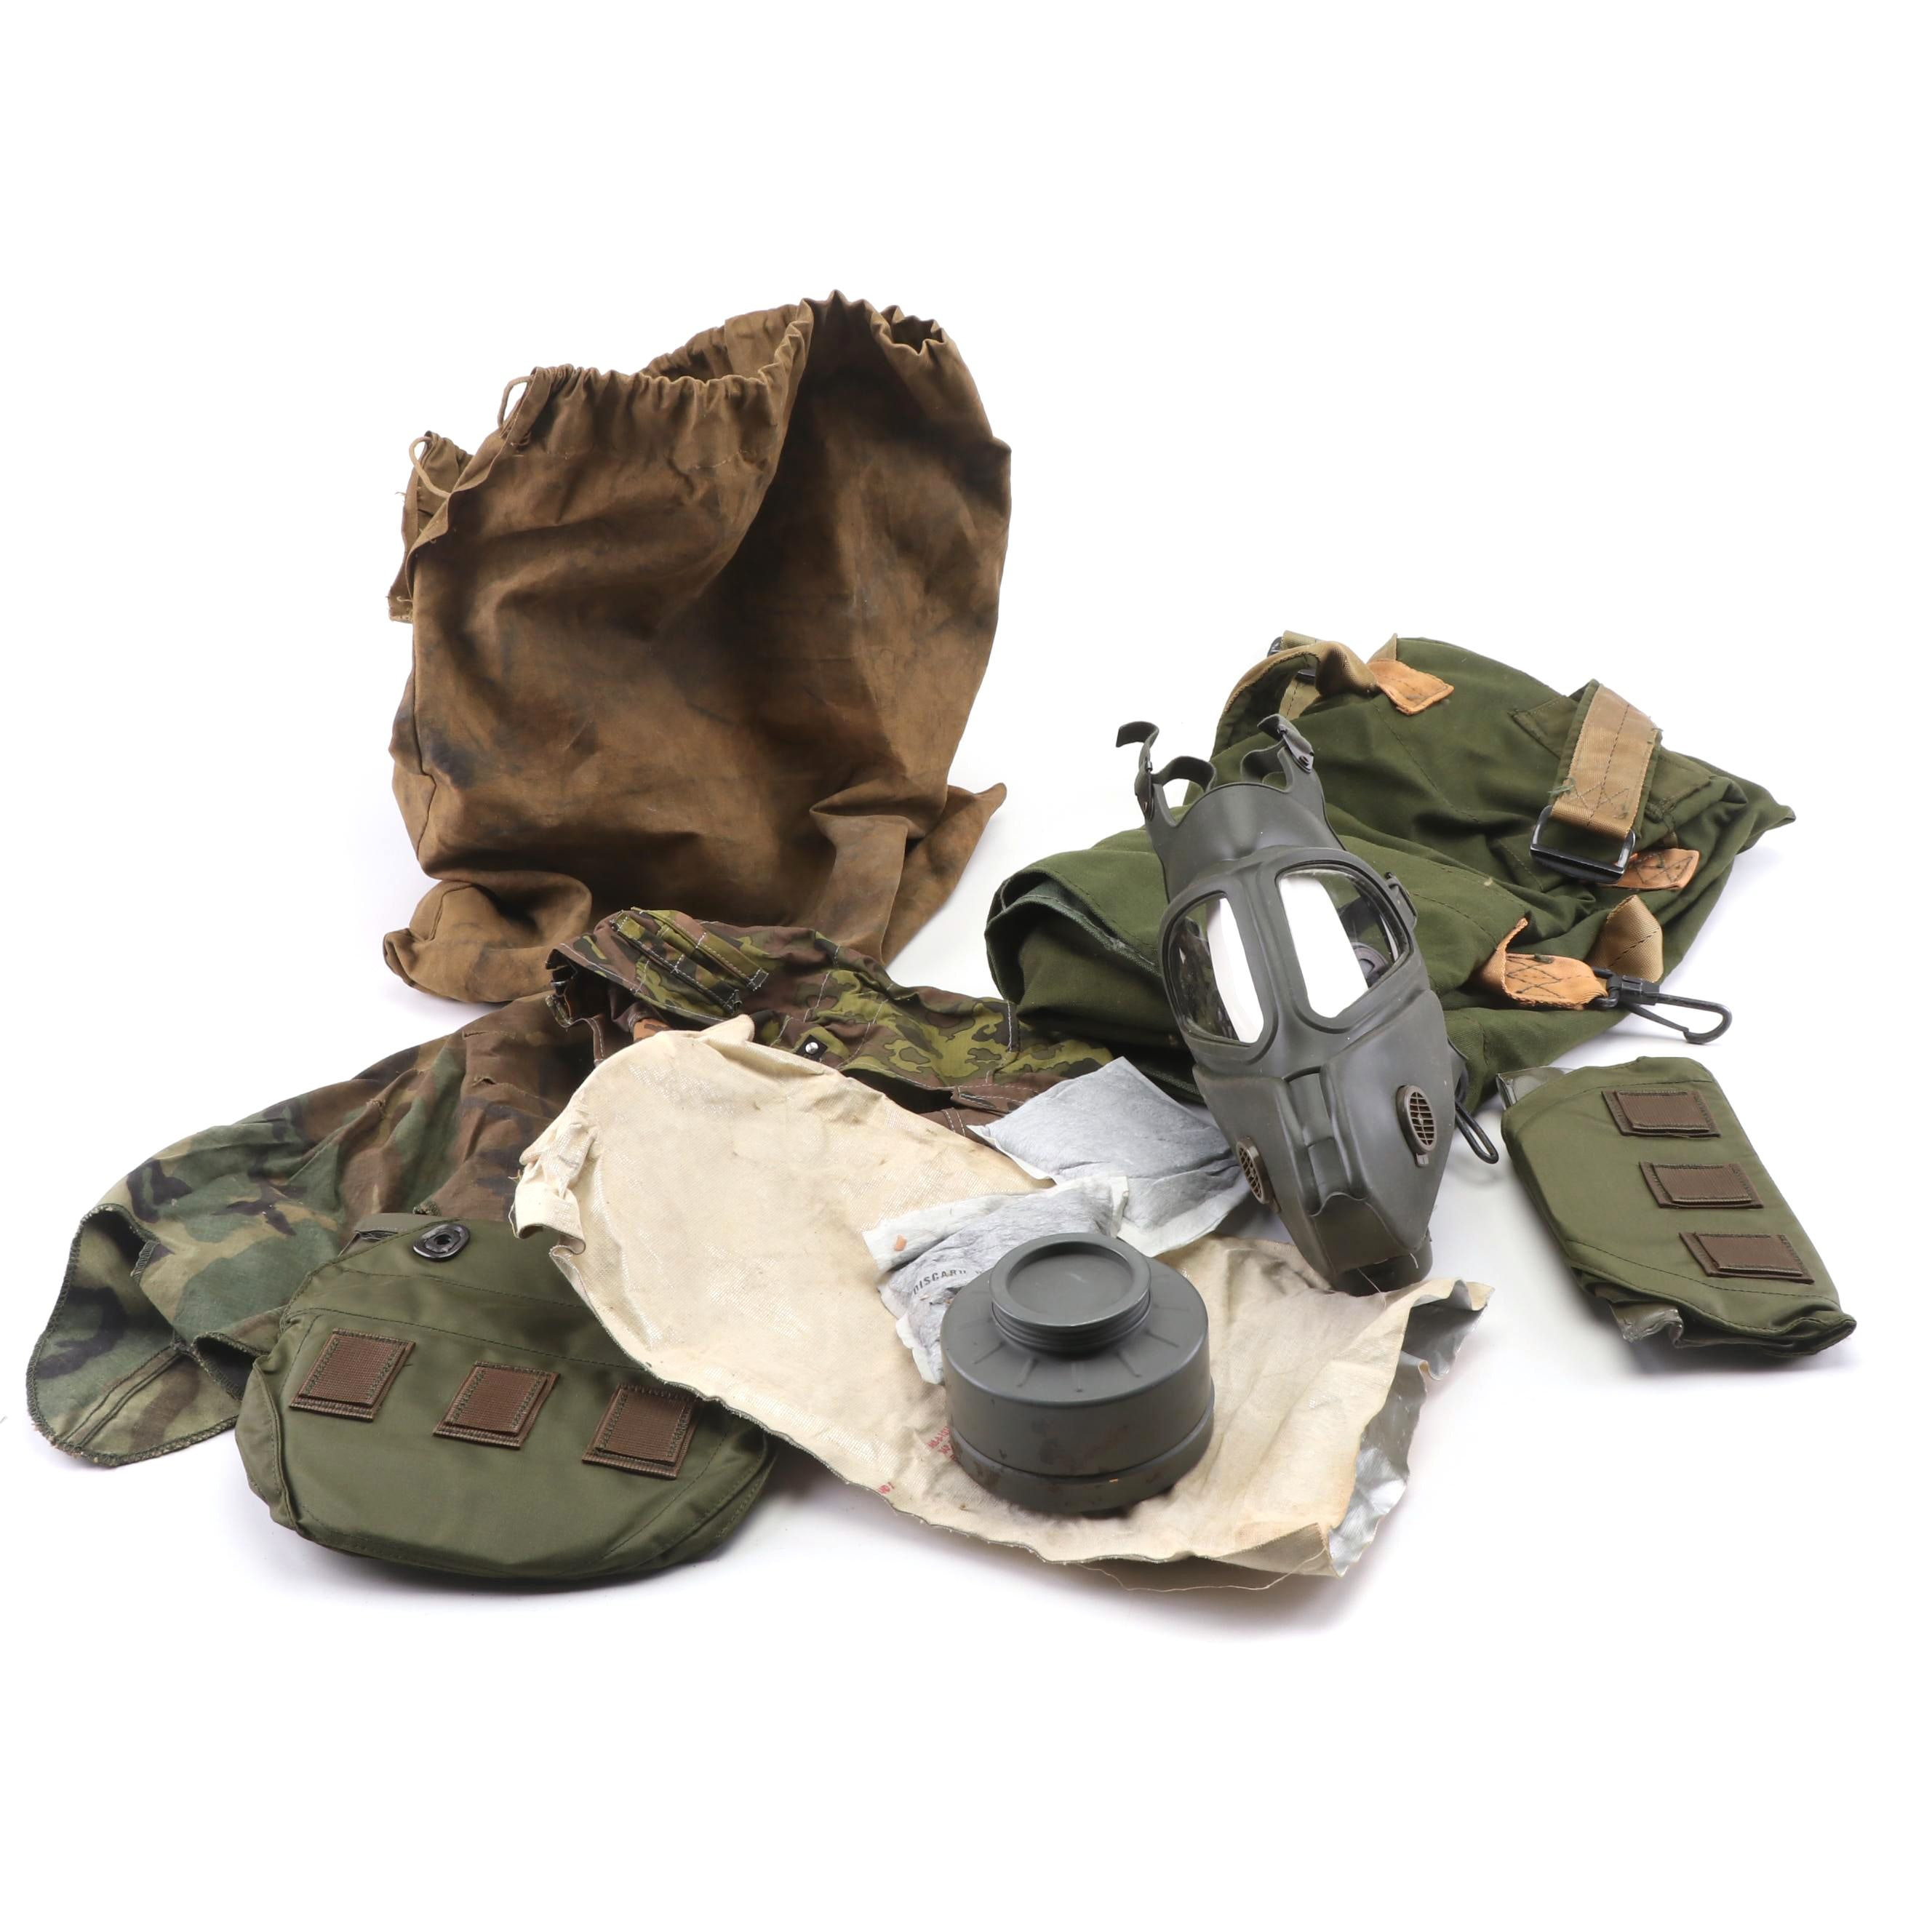 U.S. Military Supplies including Gas Mask, circa 1960s